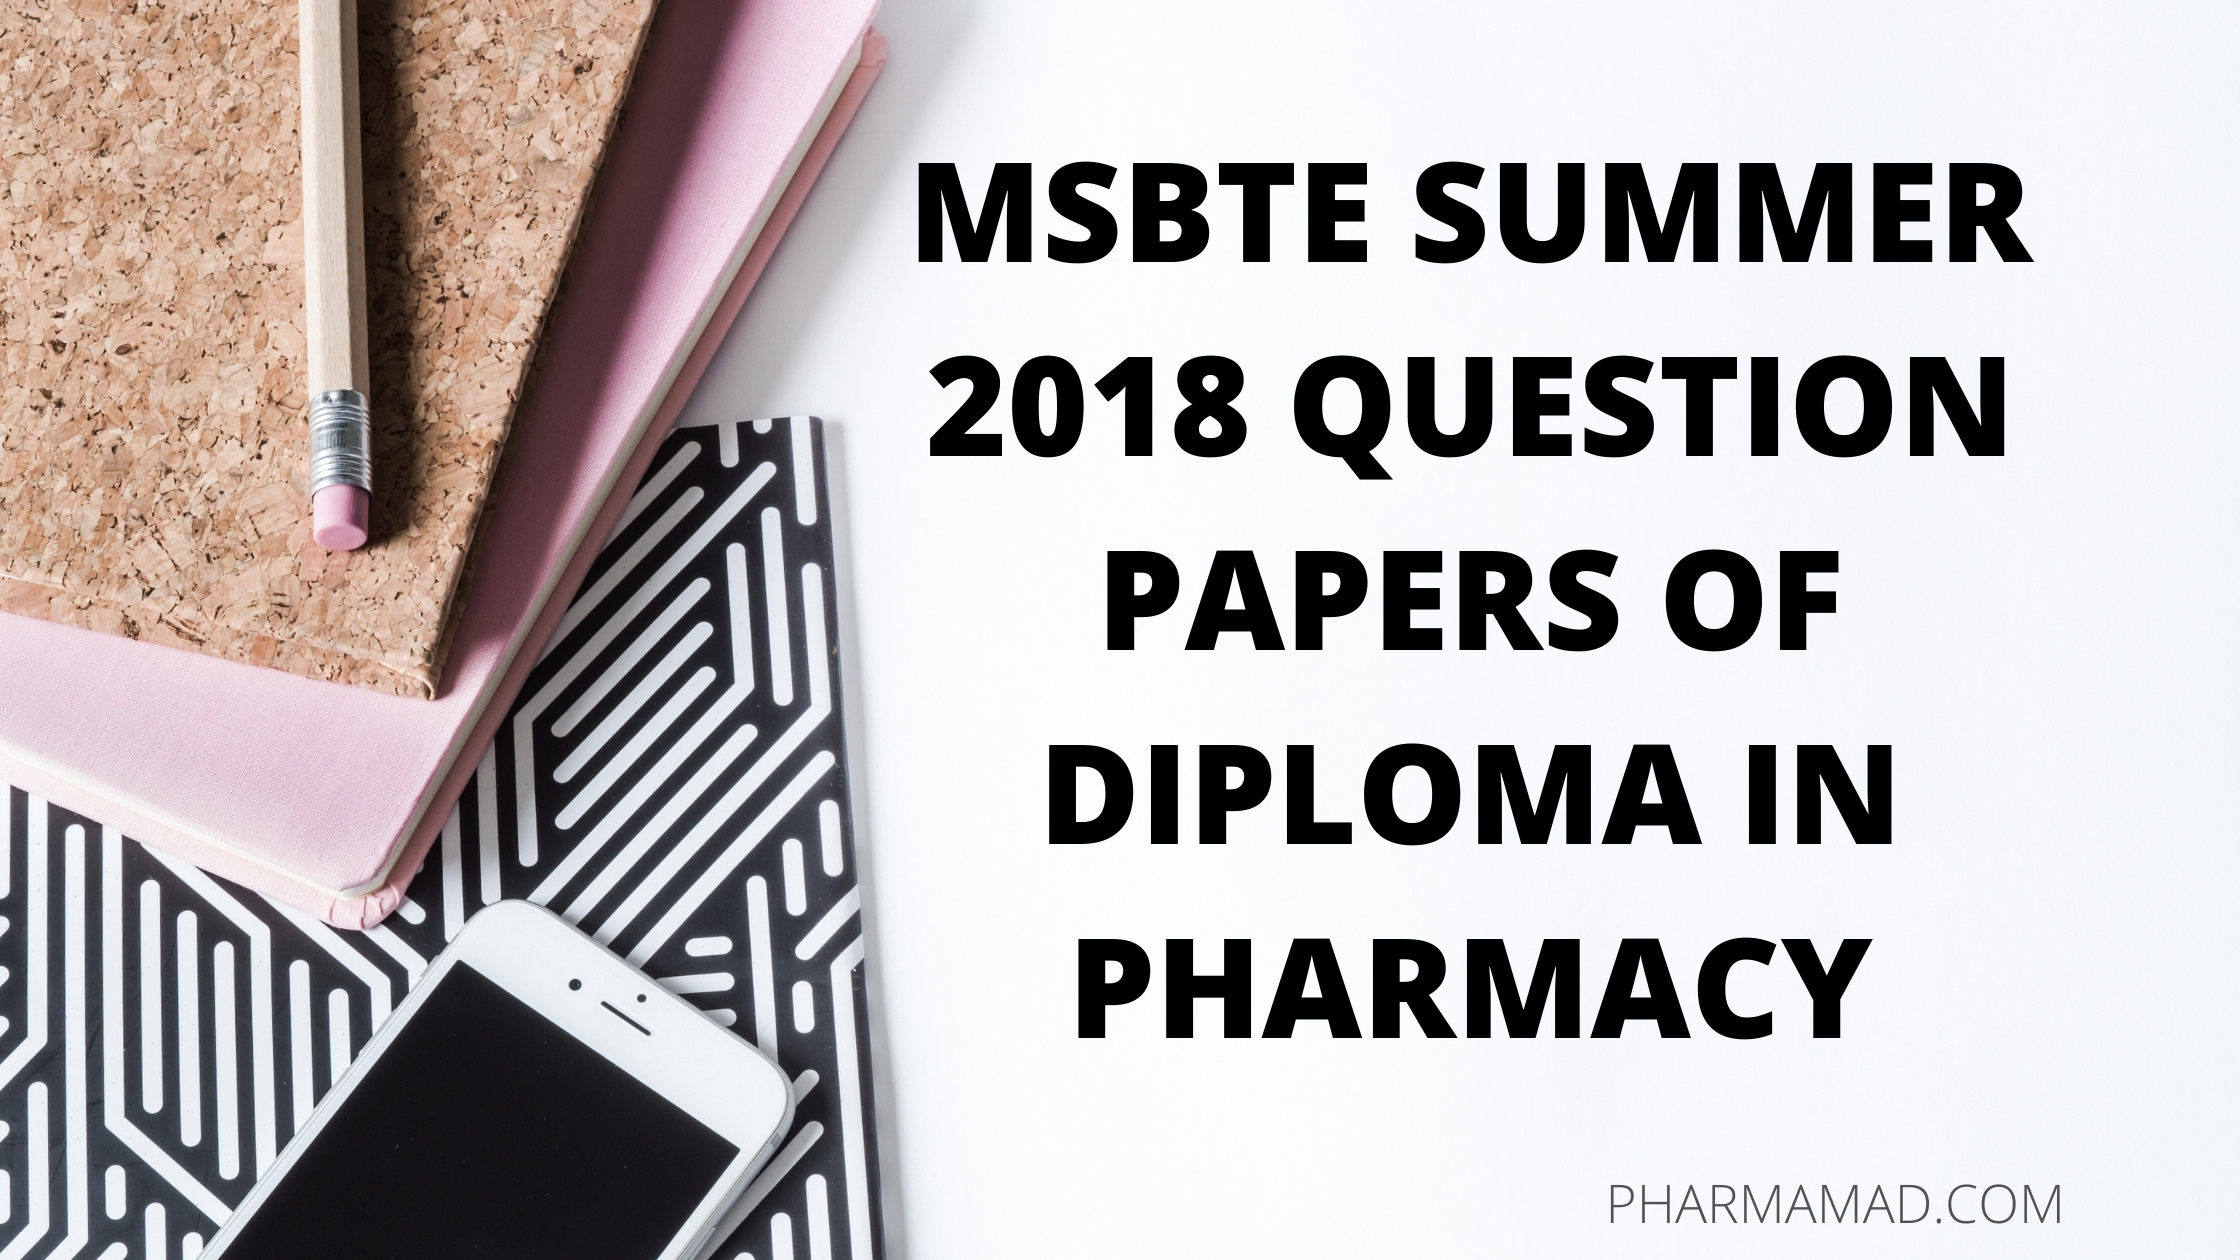 msbte summer 2018 question papers of diploma in pharmacy